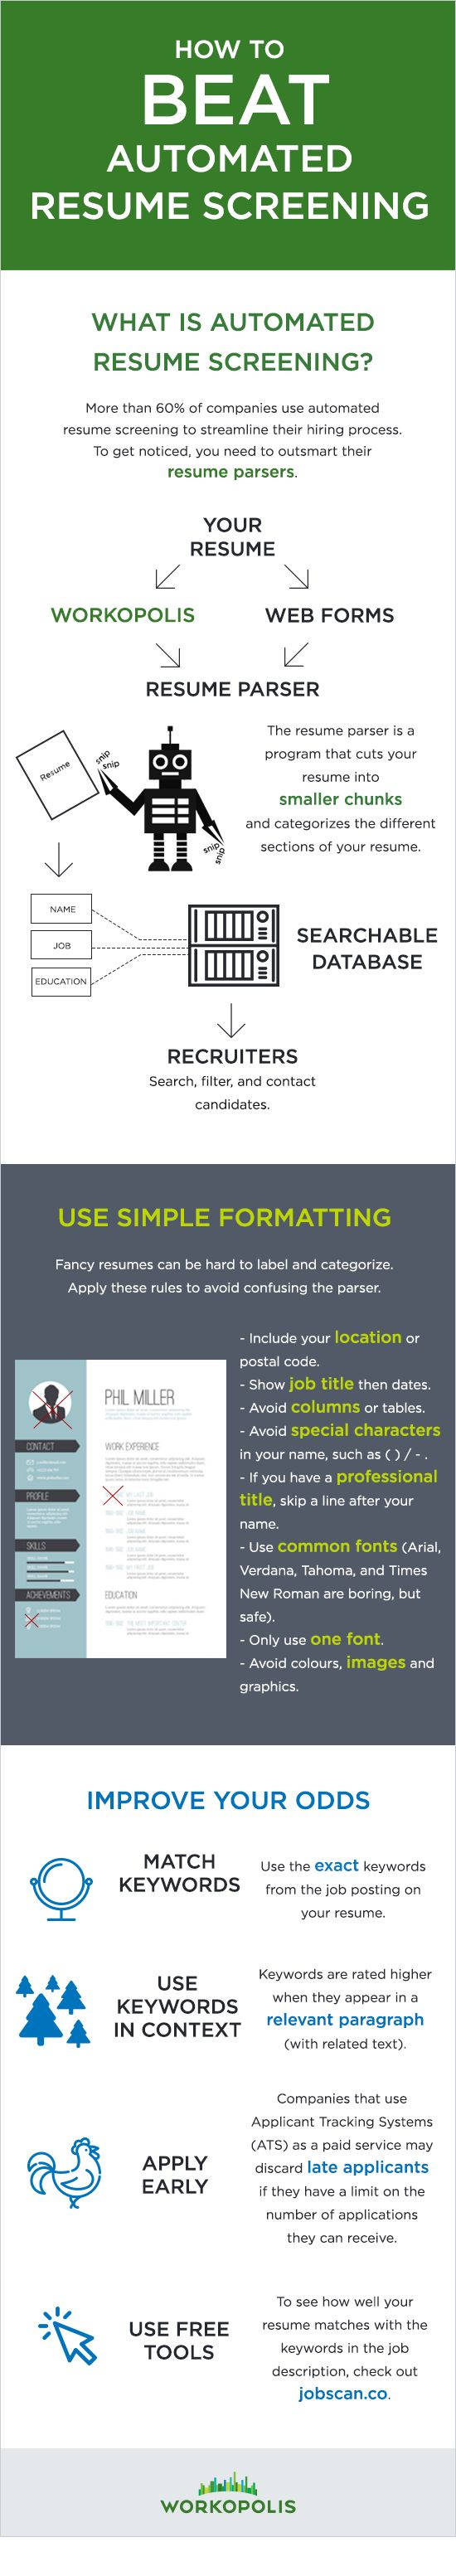 best 25 functional resume ideas on pinterest resume With how to pass resume screening